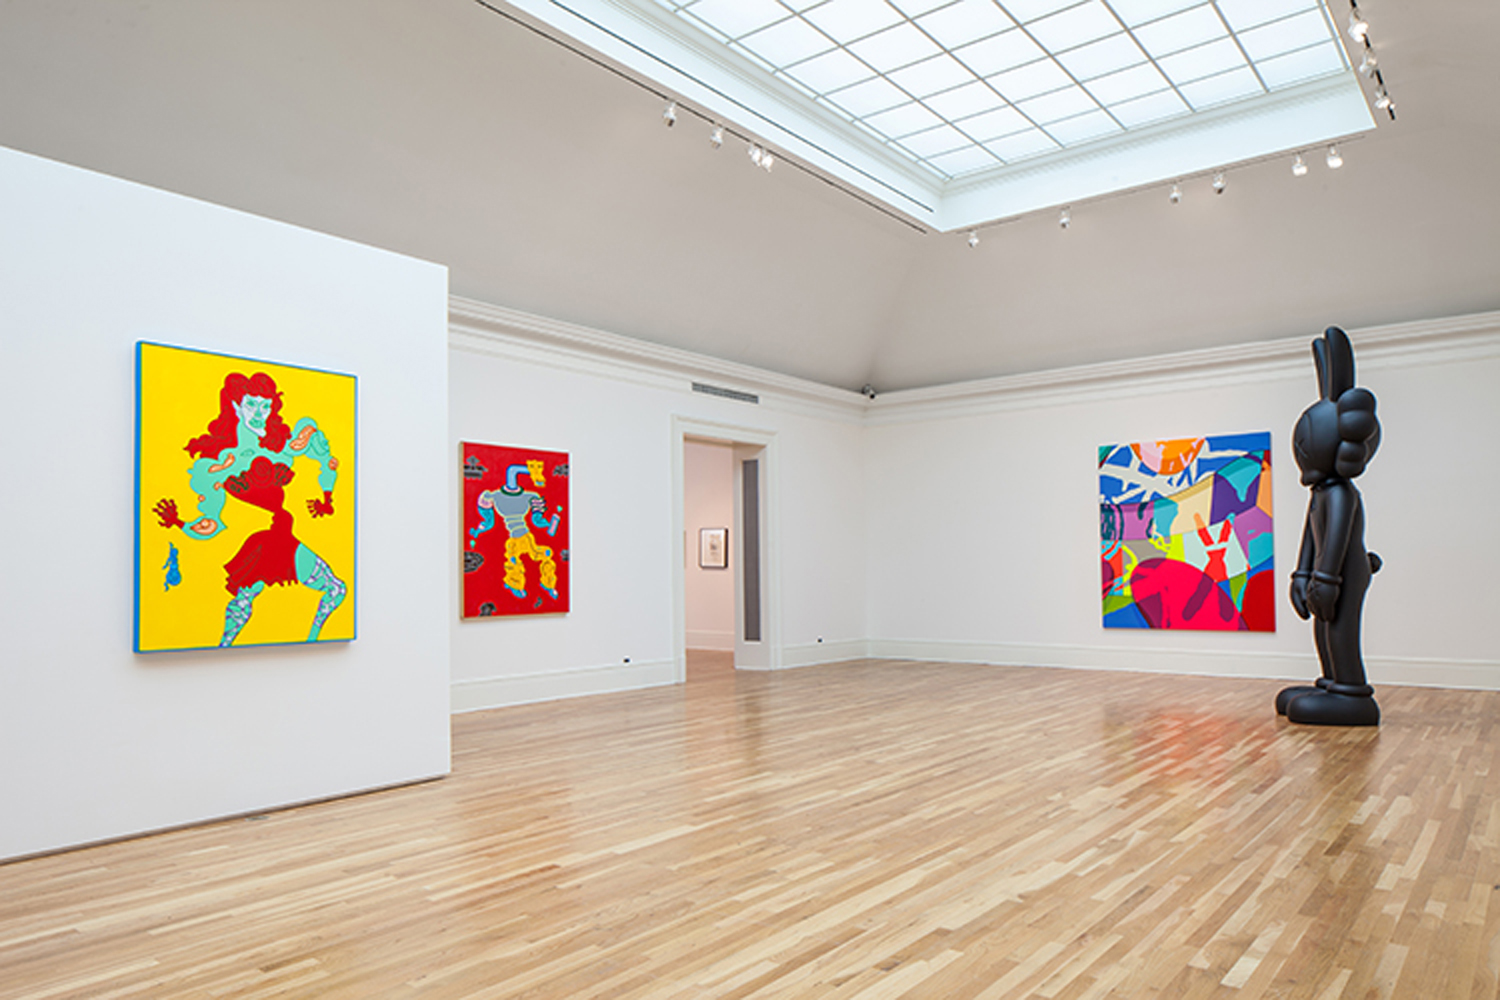 KAWS at the Newcomb Art Museum